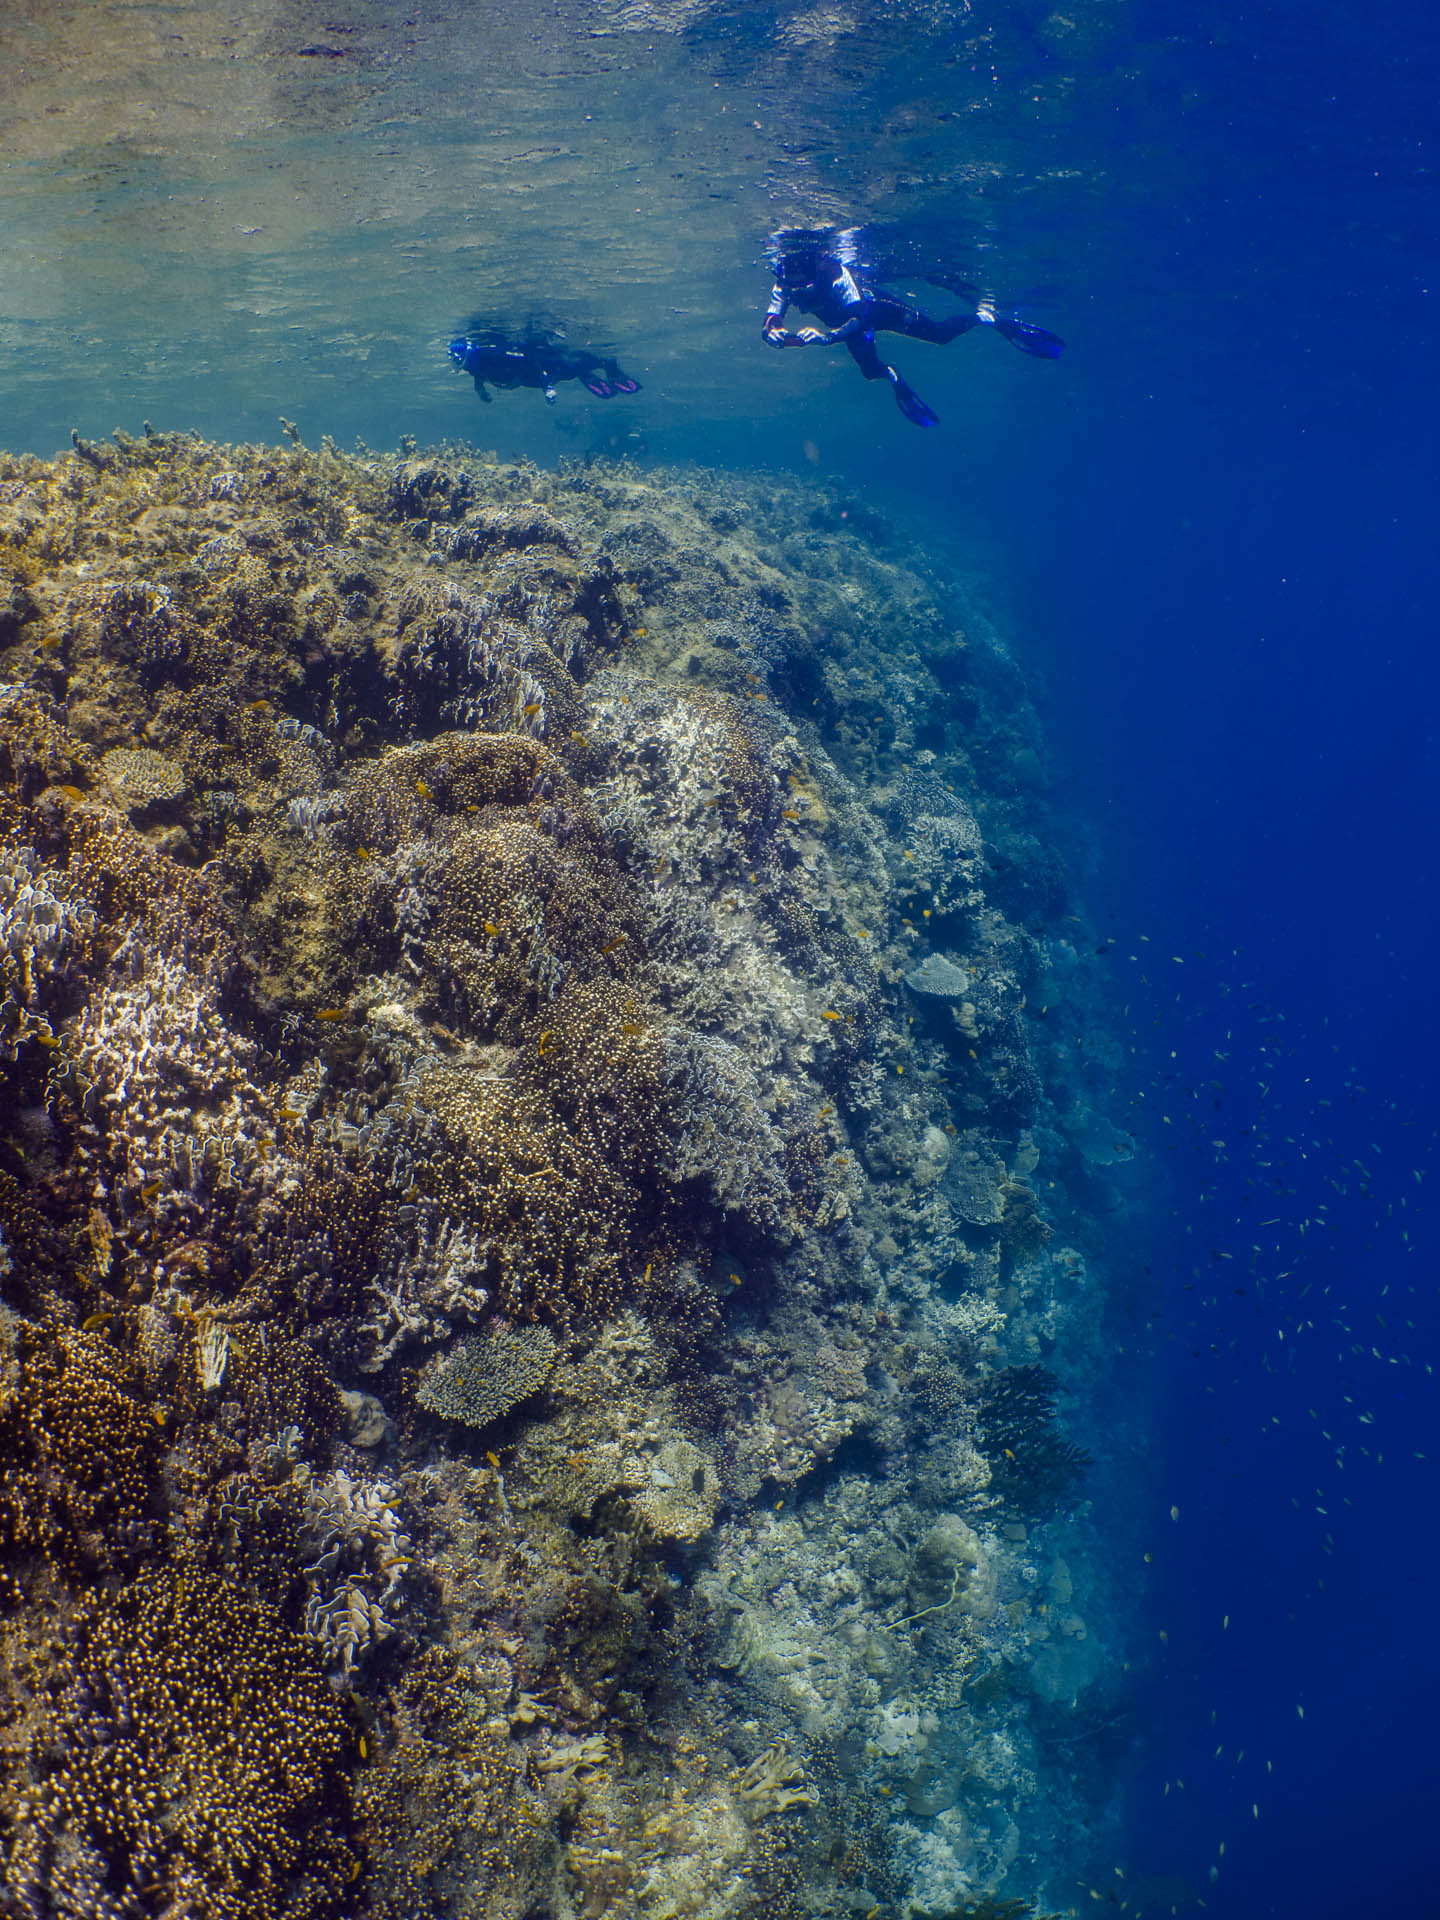 Snorkelers floating above coral wall